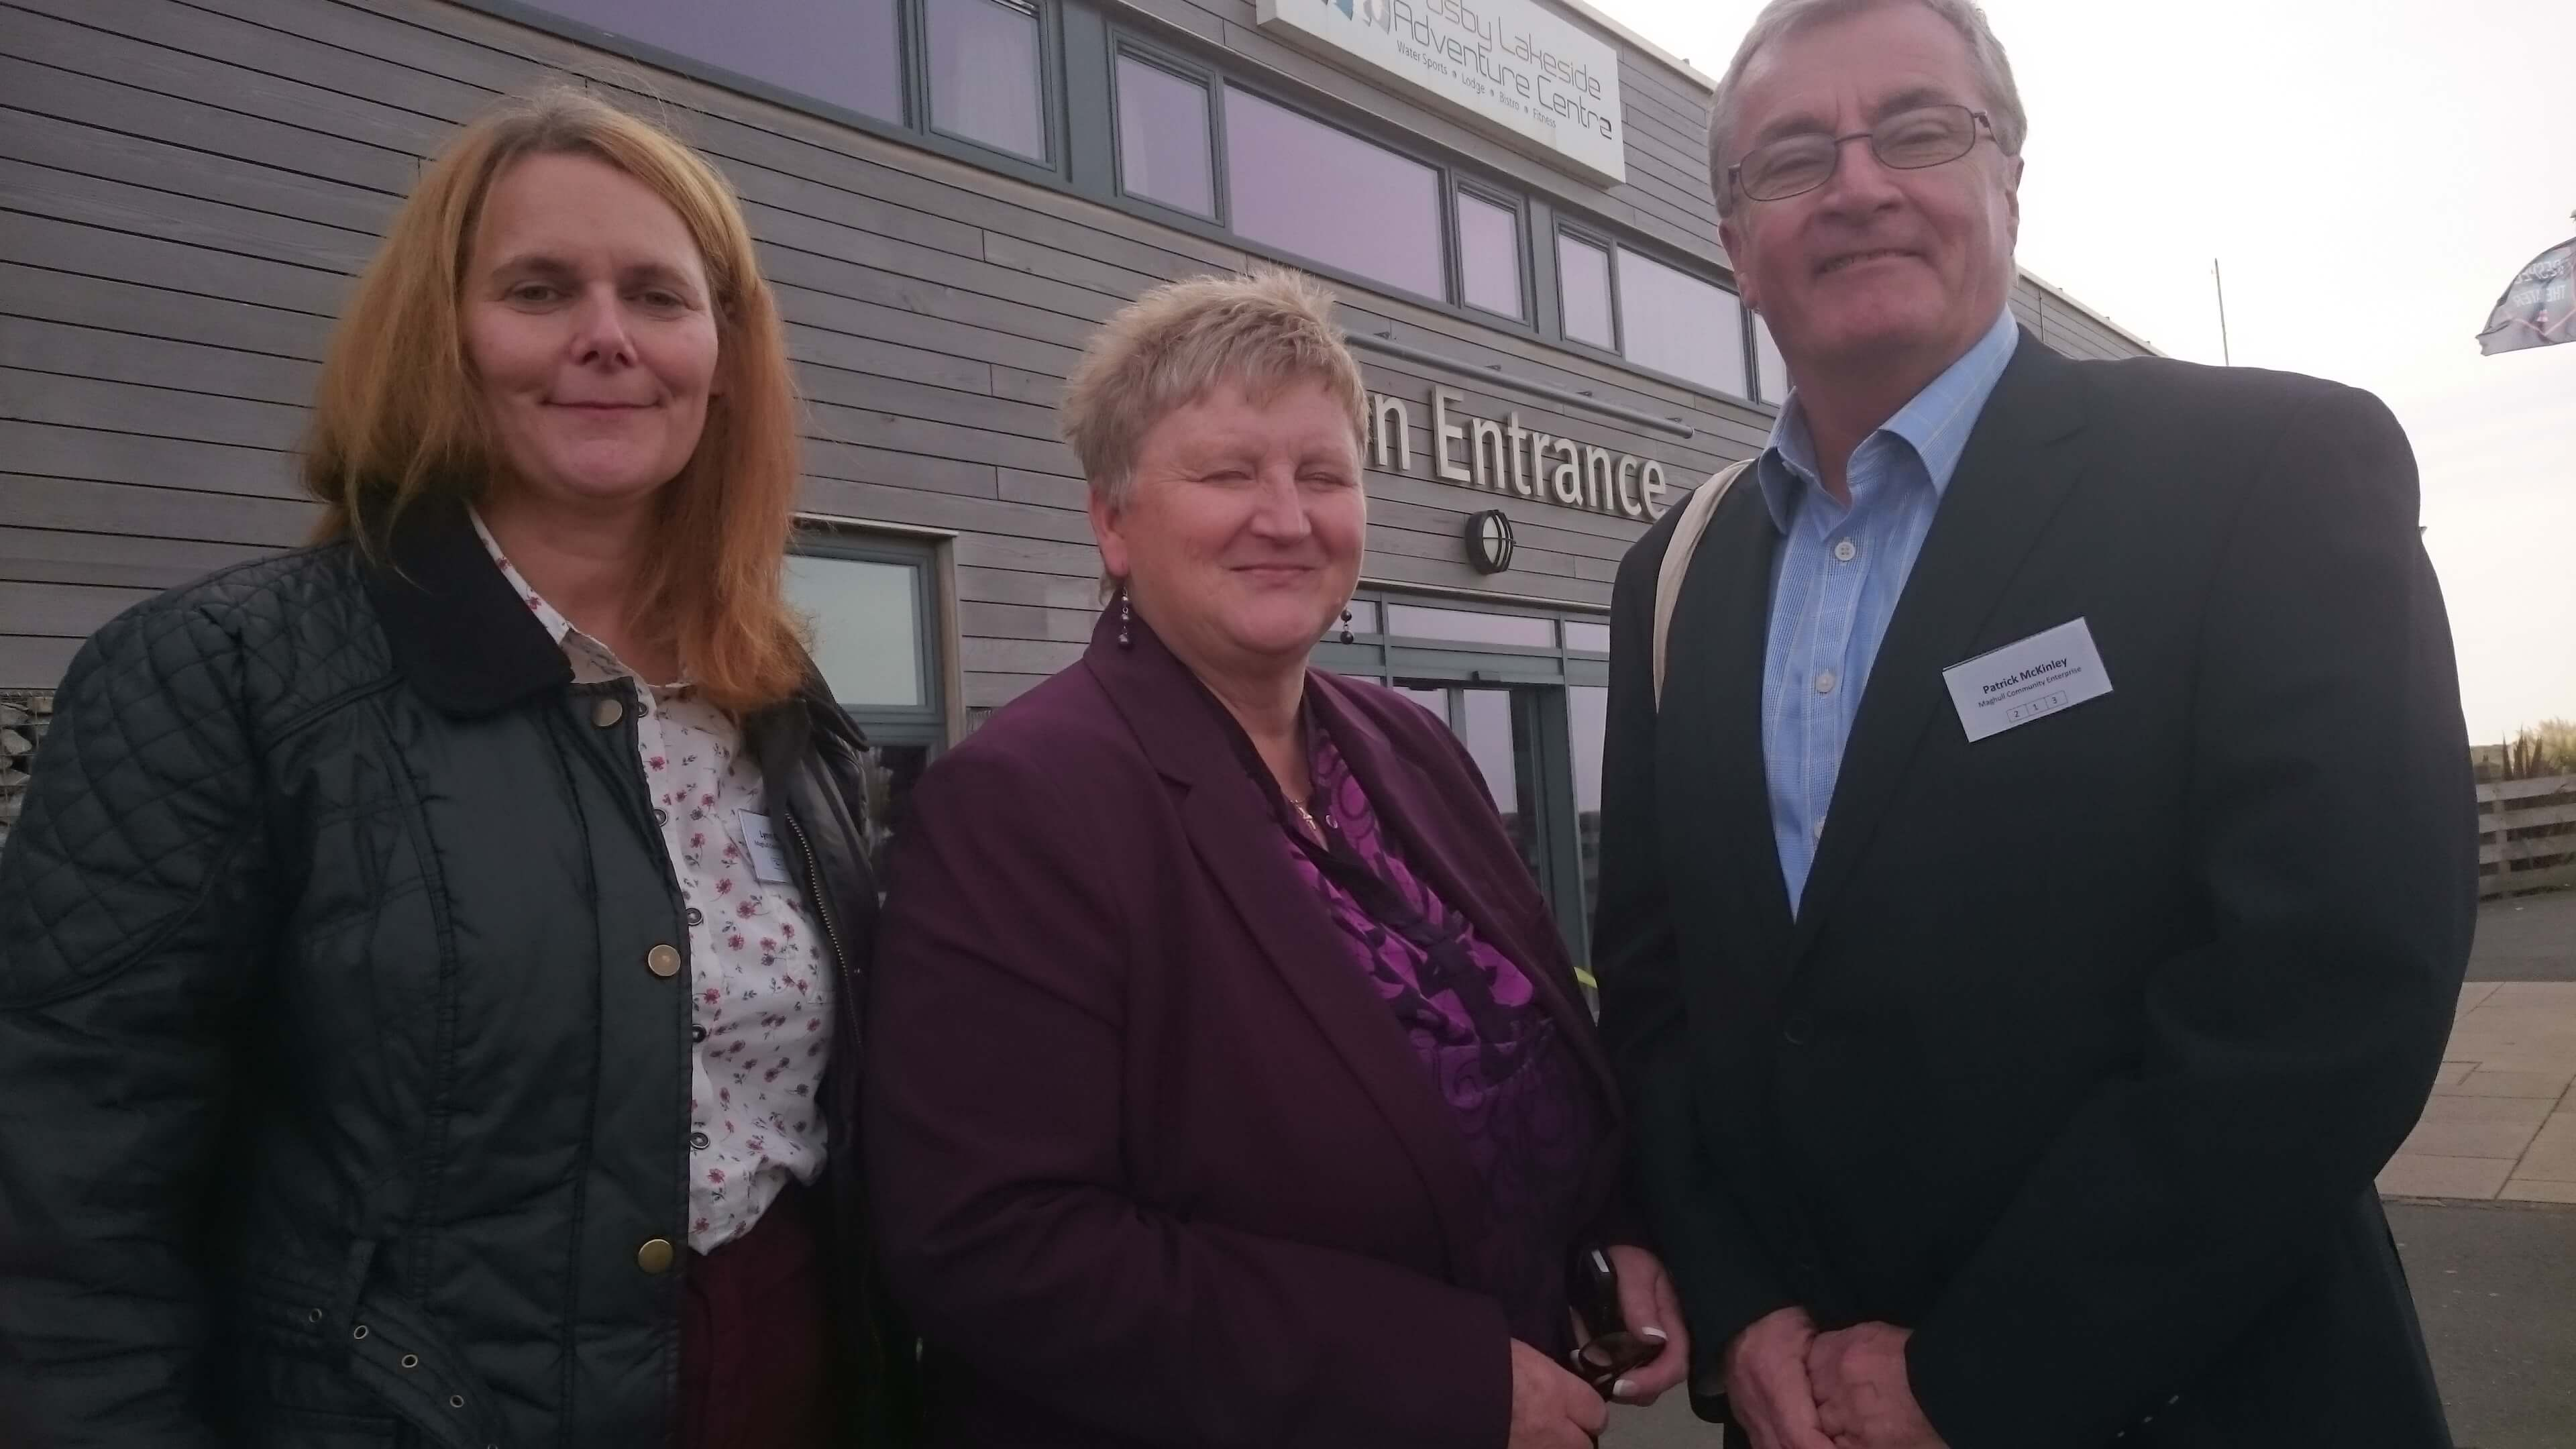 Maghull Community Enterprise co-founders Cllr Lynn Gatherer and Cllr Patrick McKinley with Sefton CVS chief executive Angela White.